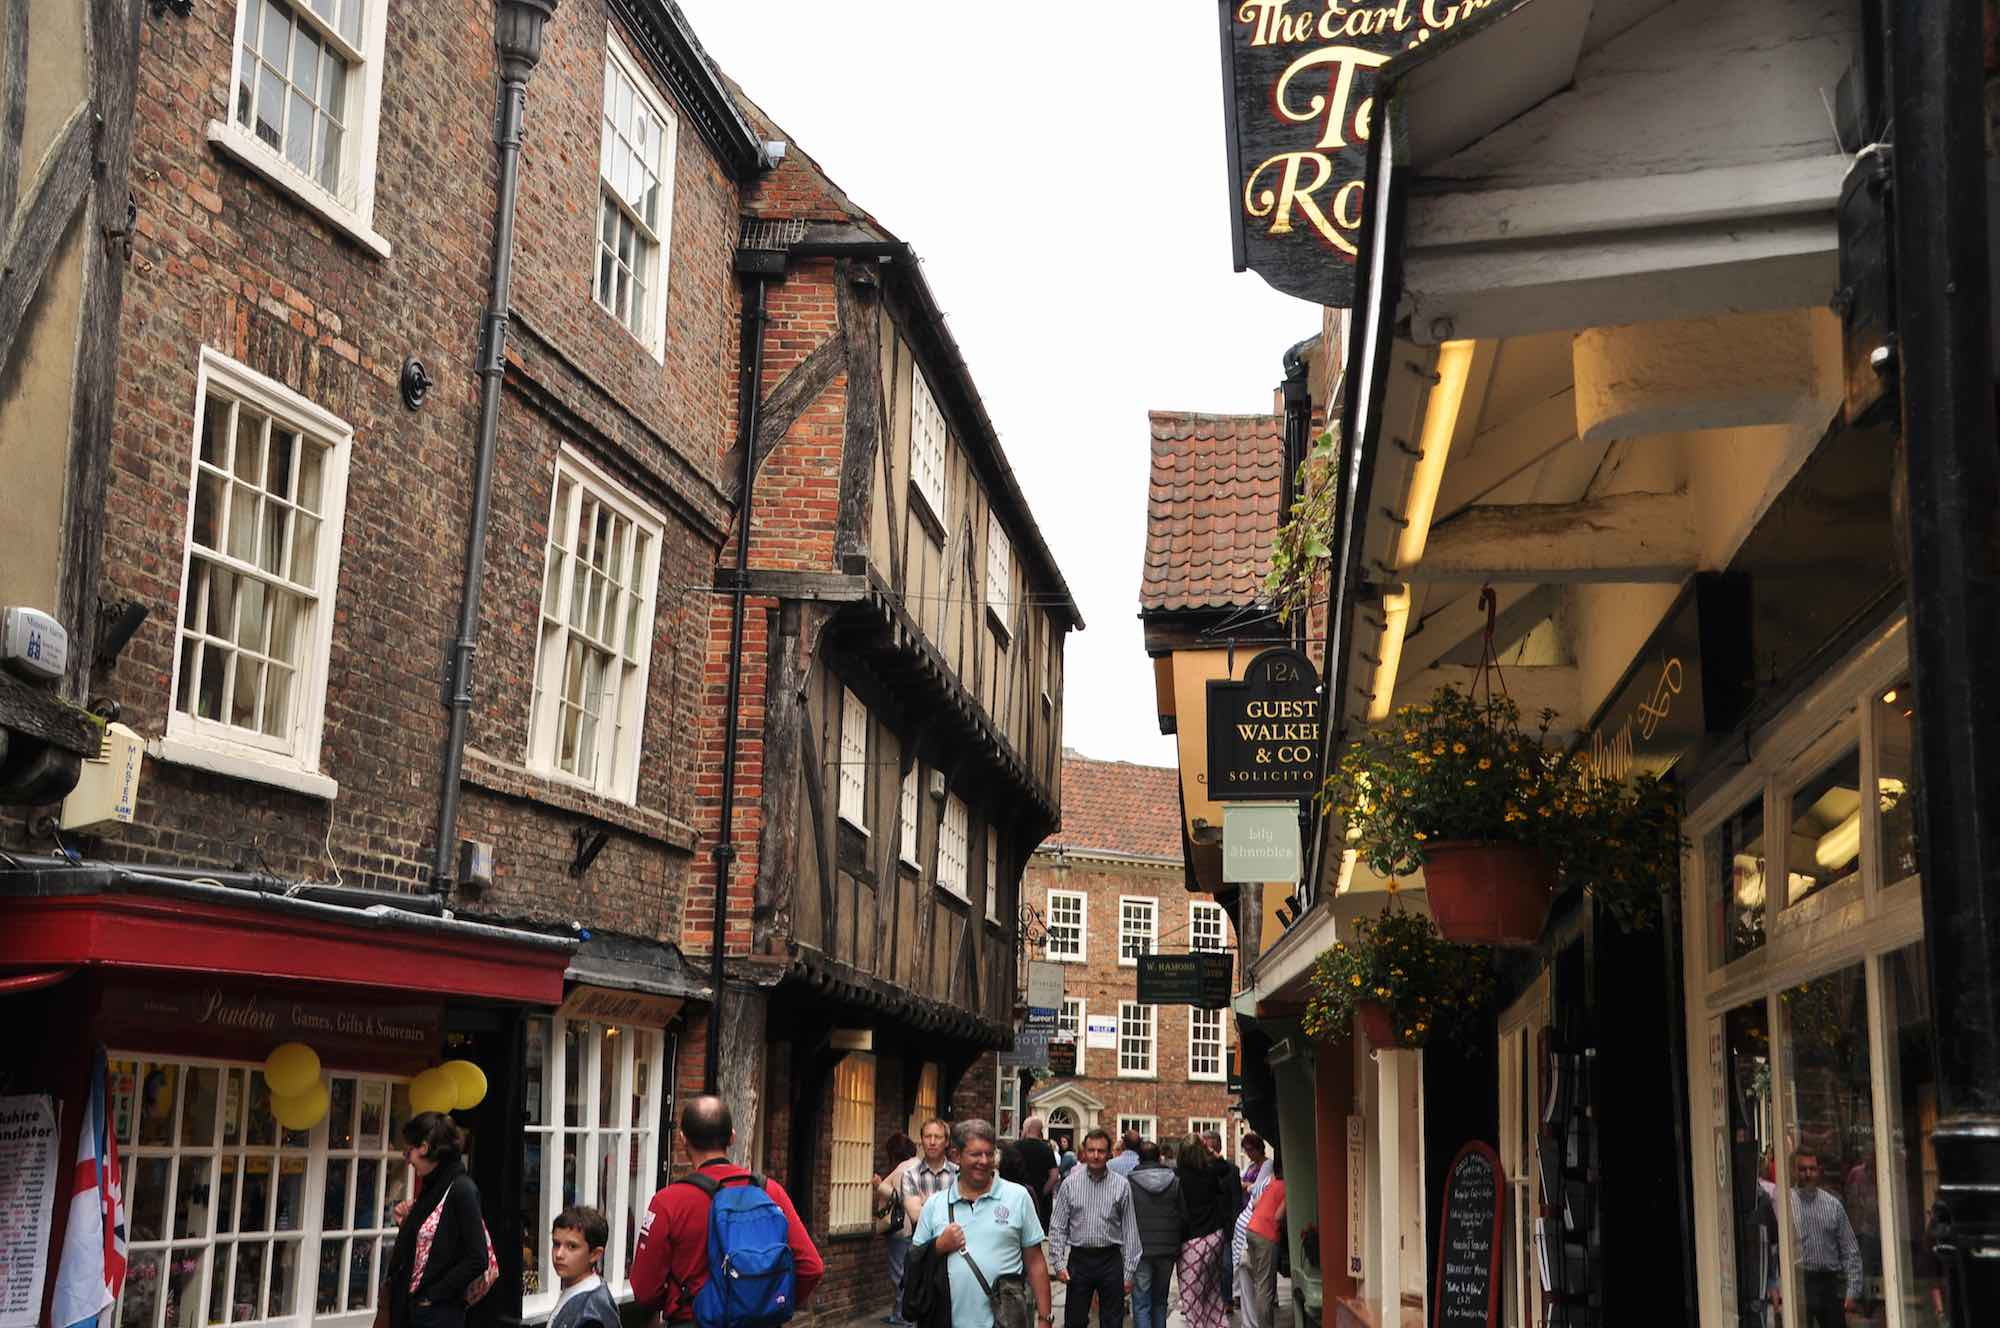 The_Shambles,_York_History Hustle photo